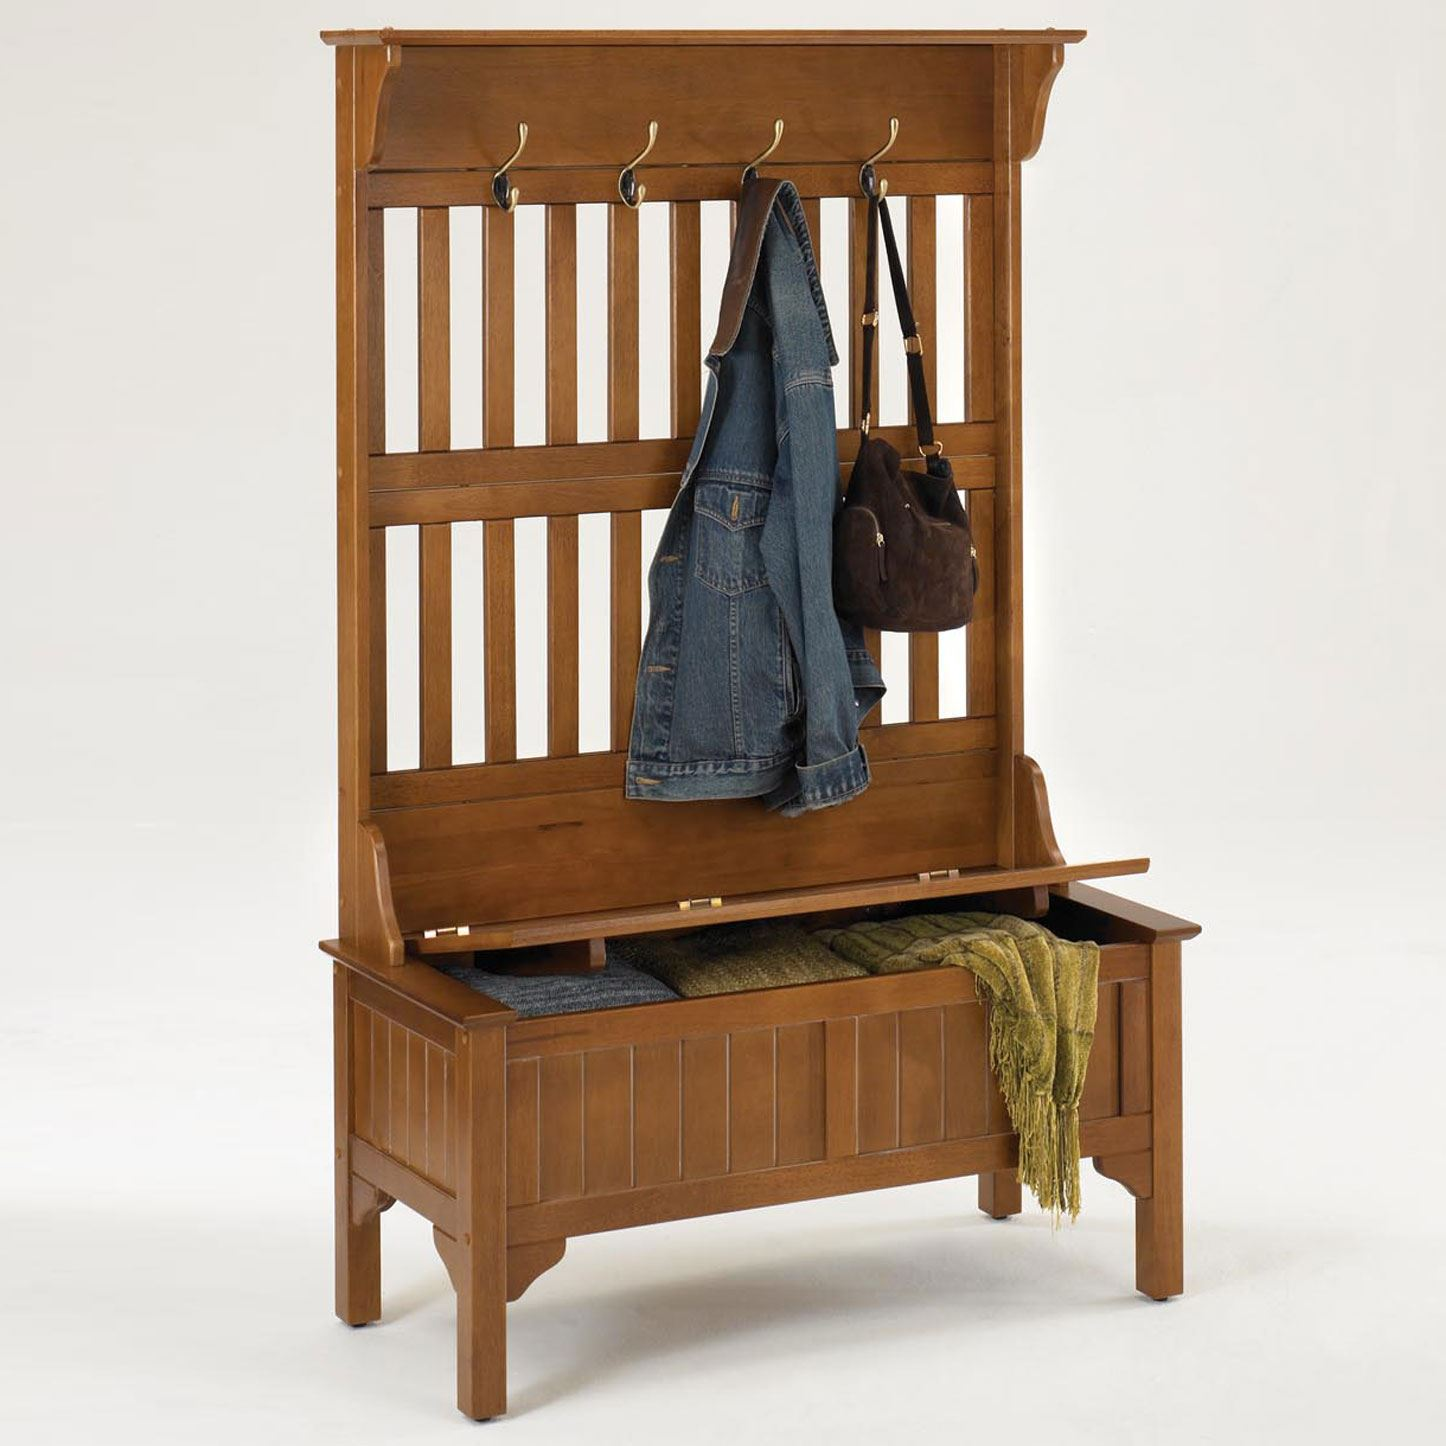 Entryway Storage Bench with Coat Rack for Inspiring Storage Design Ideas: Hallway Storage Bench With Coat Rack | Entryway Storage Bench With Coat Rack | Entryway Storage Bench With Coat Rack